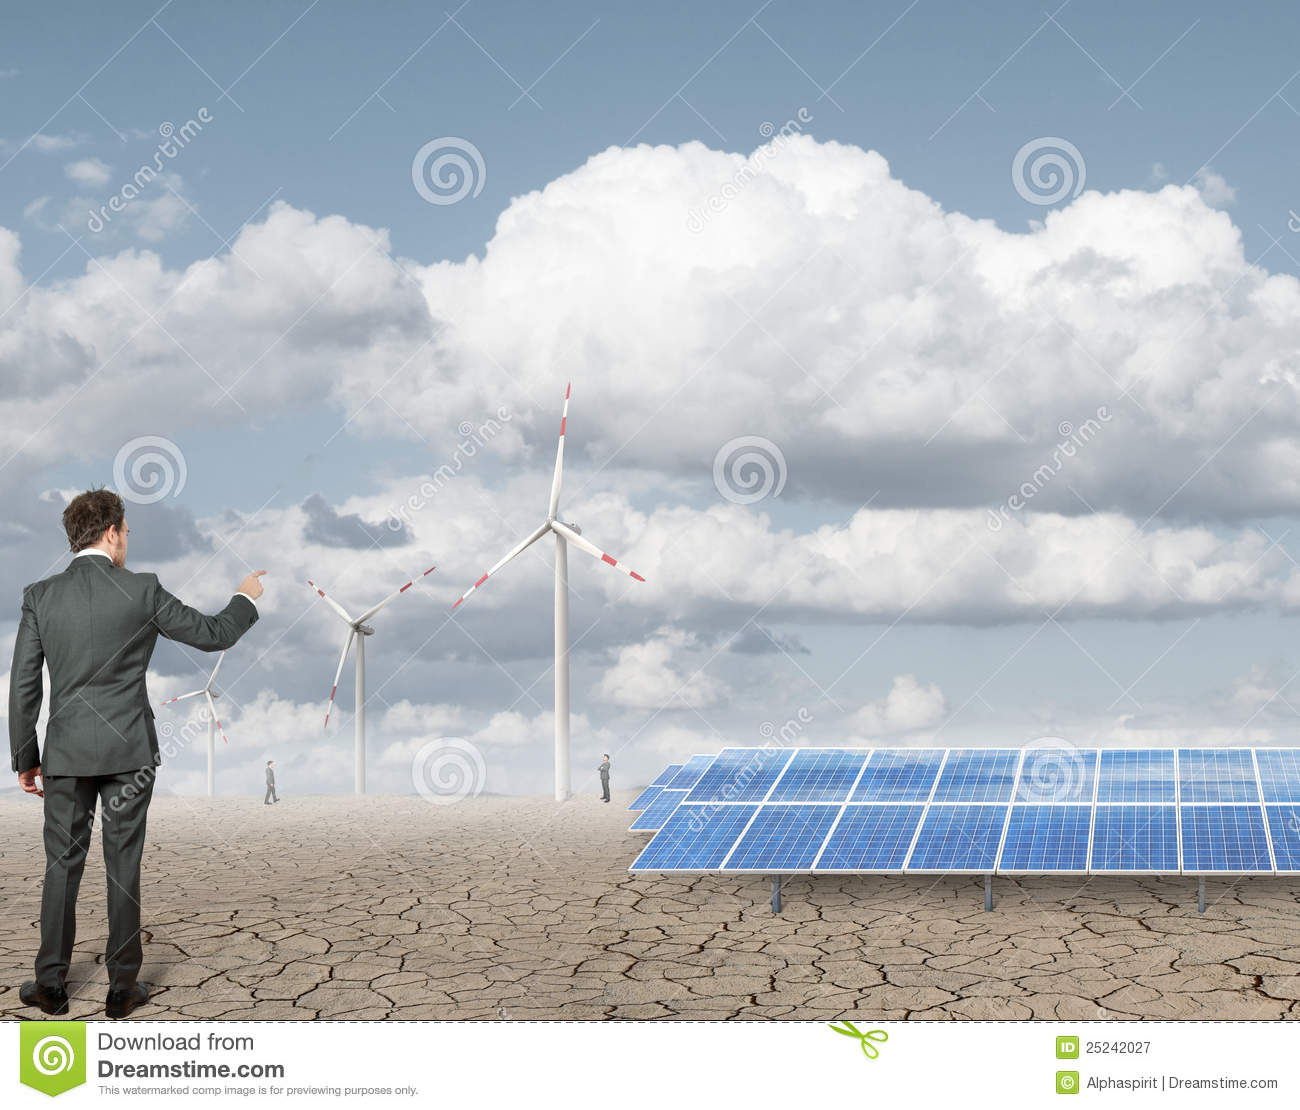 Royalty Free Stock Photography: Businessman and renewable anergy